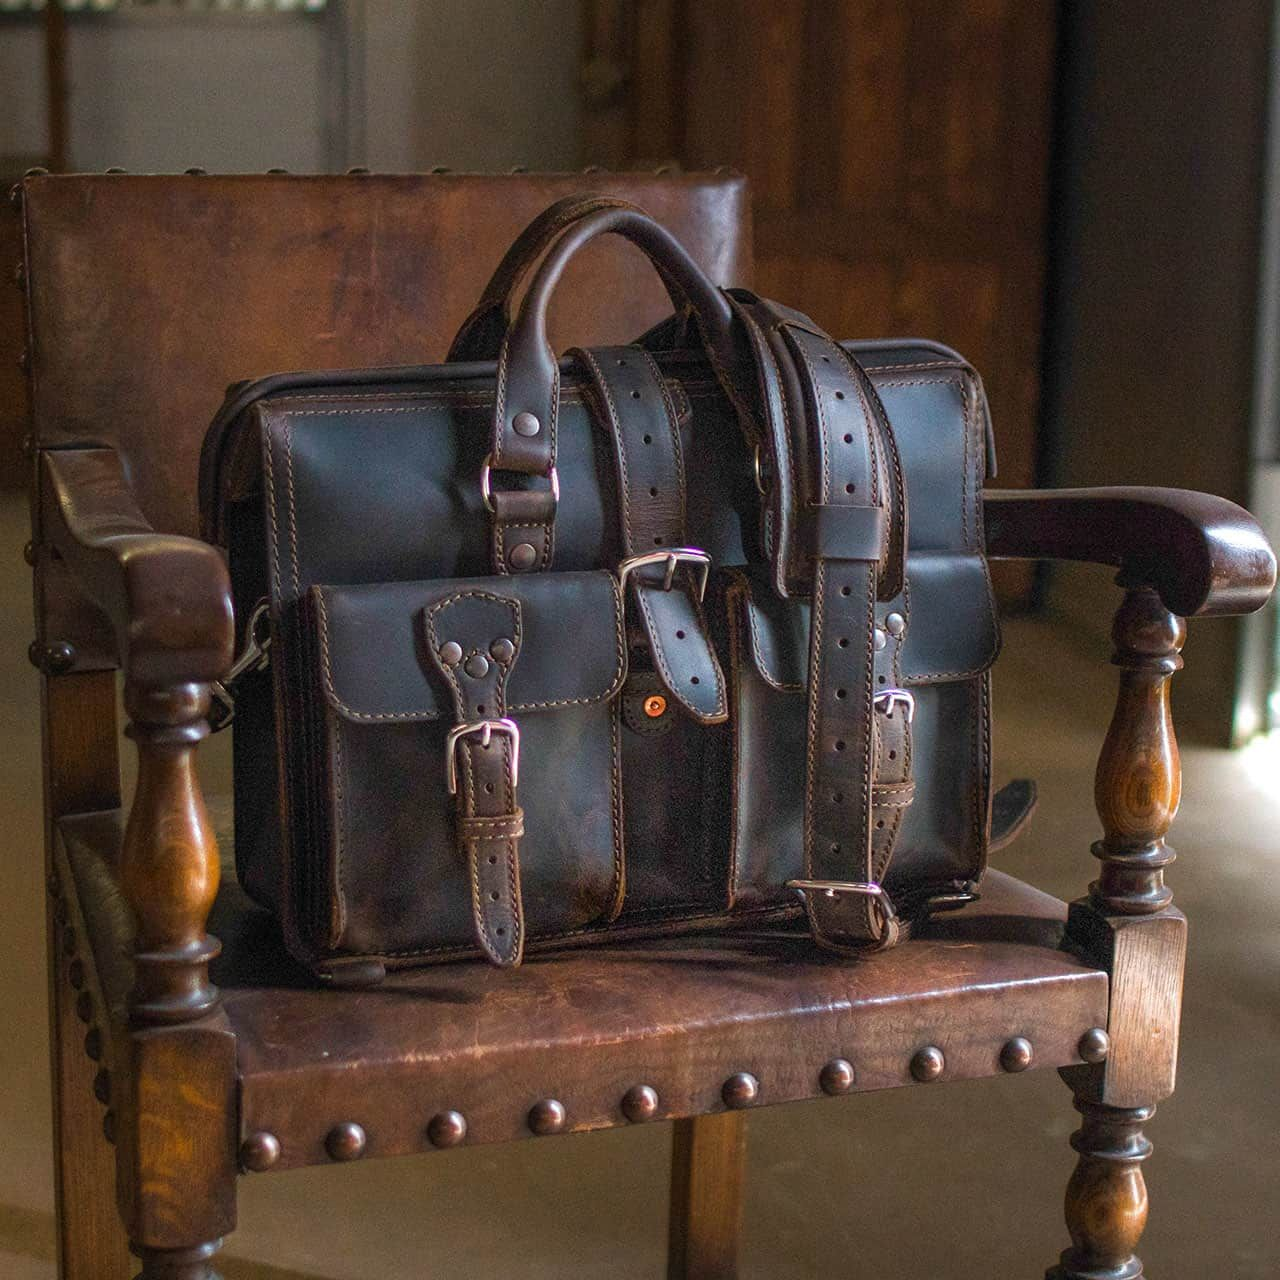 Leather Flight Bag sitting Grandly in a Chair